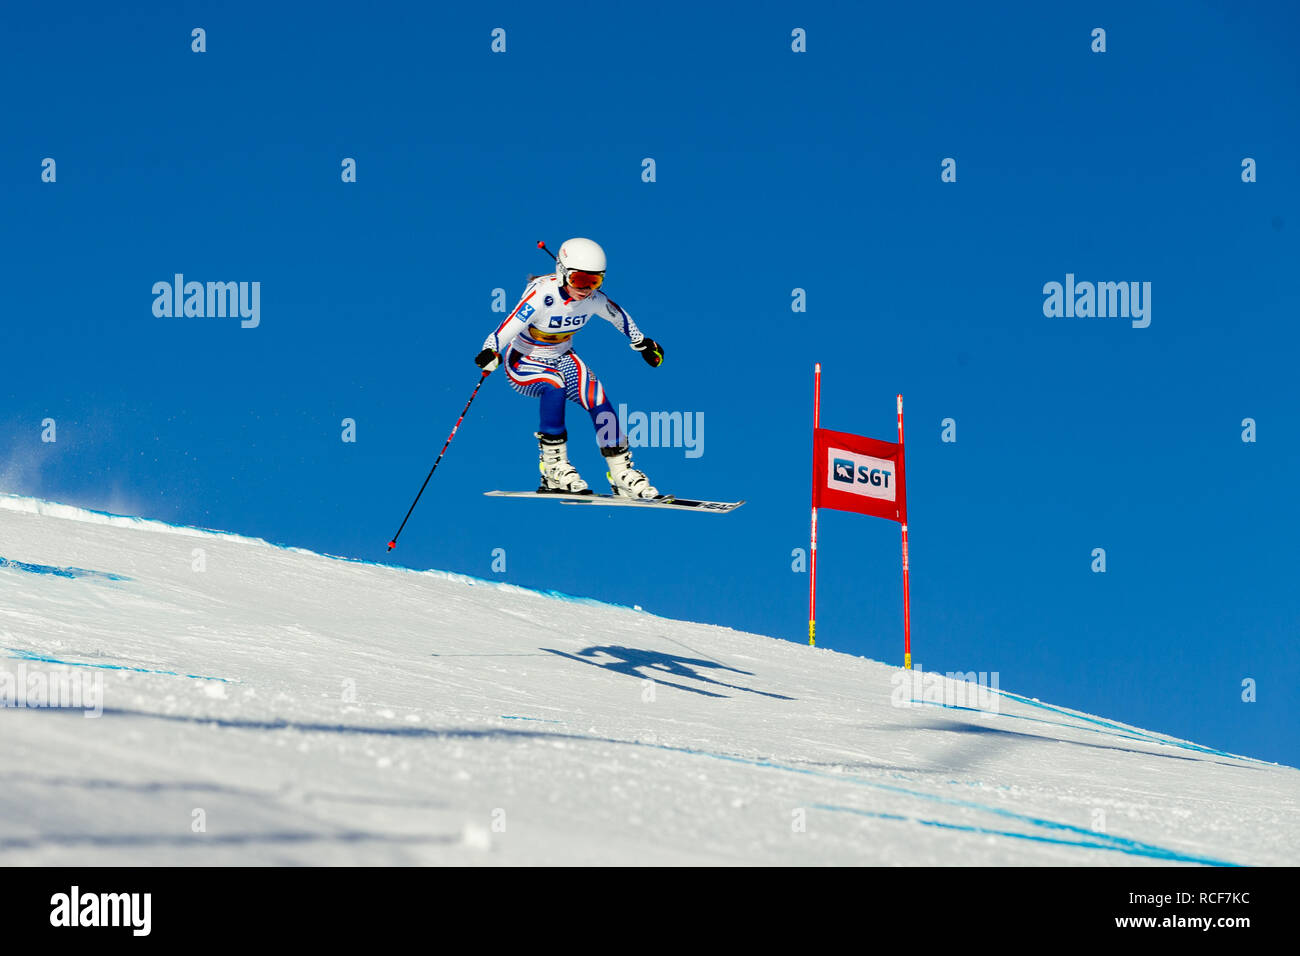 Magnitogorsk, Russia - December 18, 2018: women athlete racer in downhill skiing during National championship alpine skiing - Stock Image